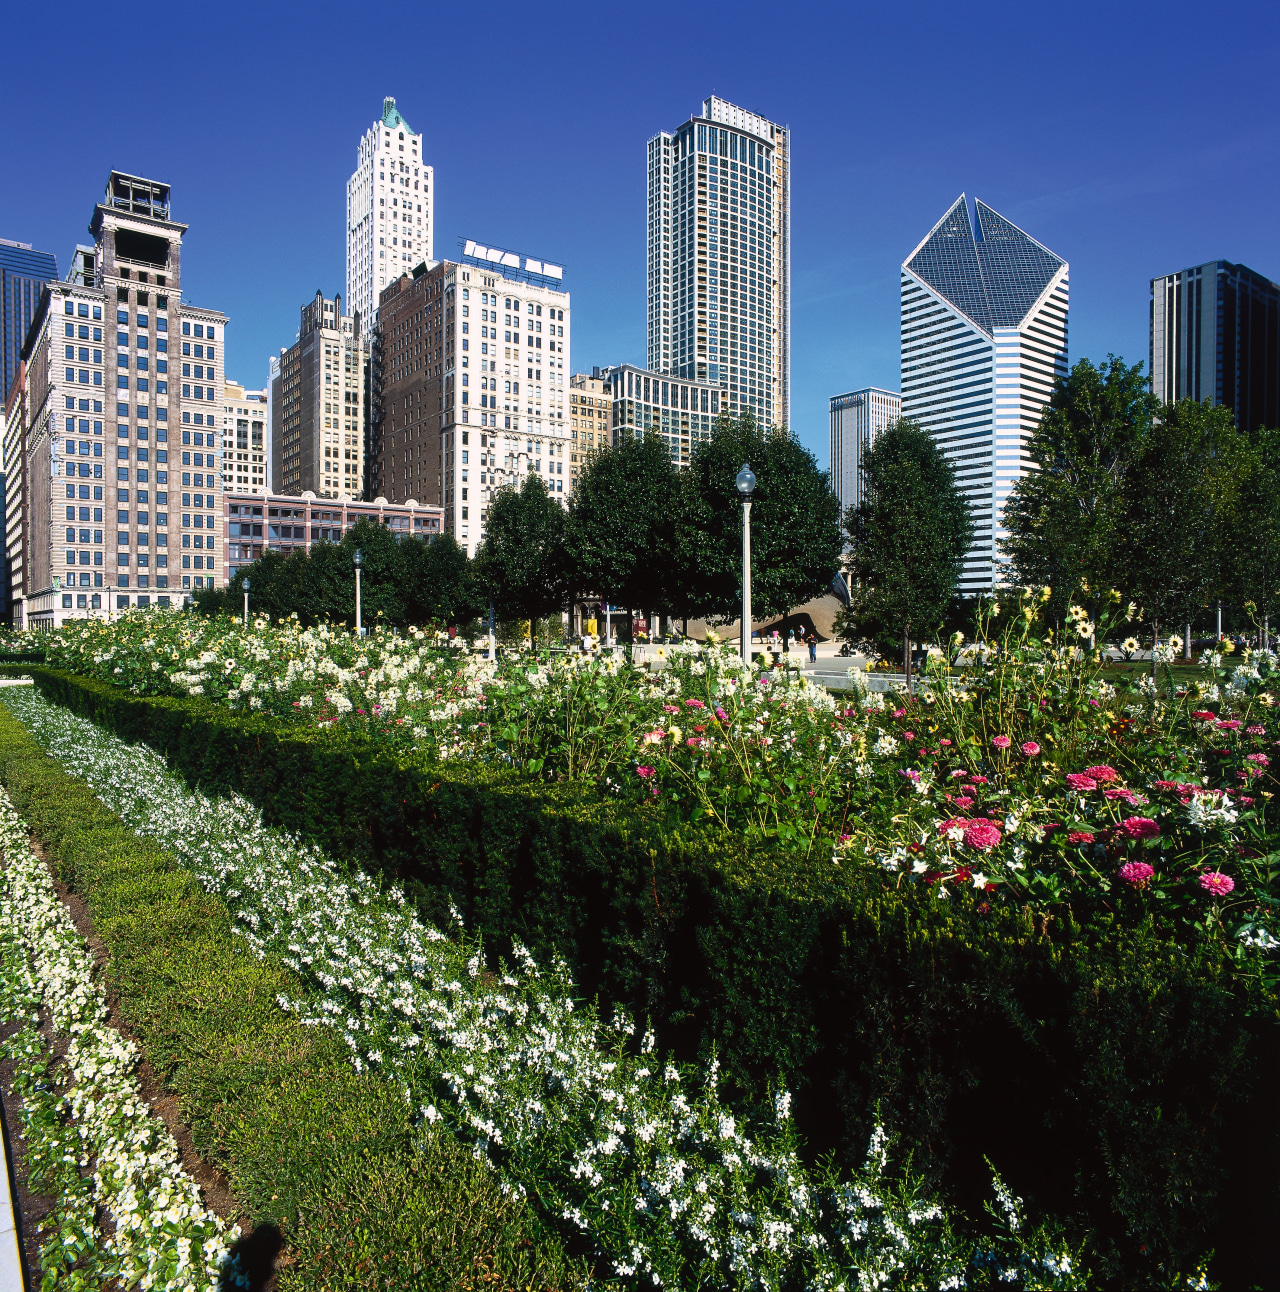 Large garden in inner city park. botanical garden, city, cityscape, condominium, daytime, downtown, flora, flower, garden, grass, leaf, meadow, metropolis, metropolitan area, neighbourhood, park, plant, residential area, sky, skyline, skyscraper, suburb, tower block, tree, urban area